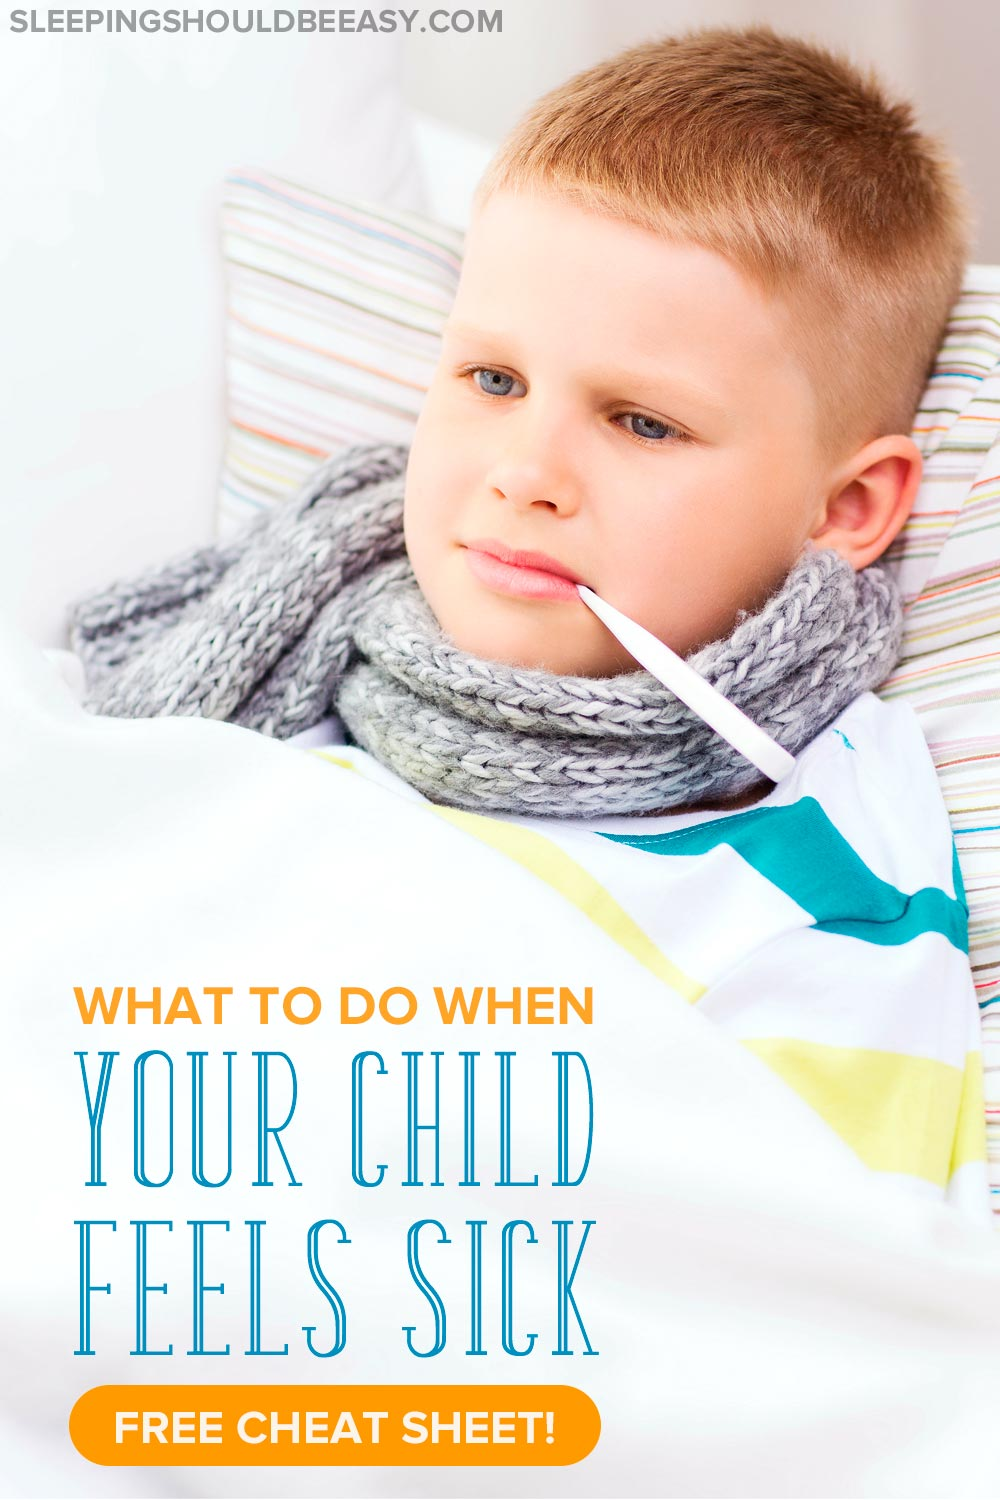 Need a quick cheat sheet of what to do when the kids get sick? Here's a cheat sheet on caring for a sick child with a list of things you can do to help.